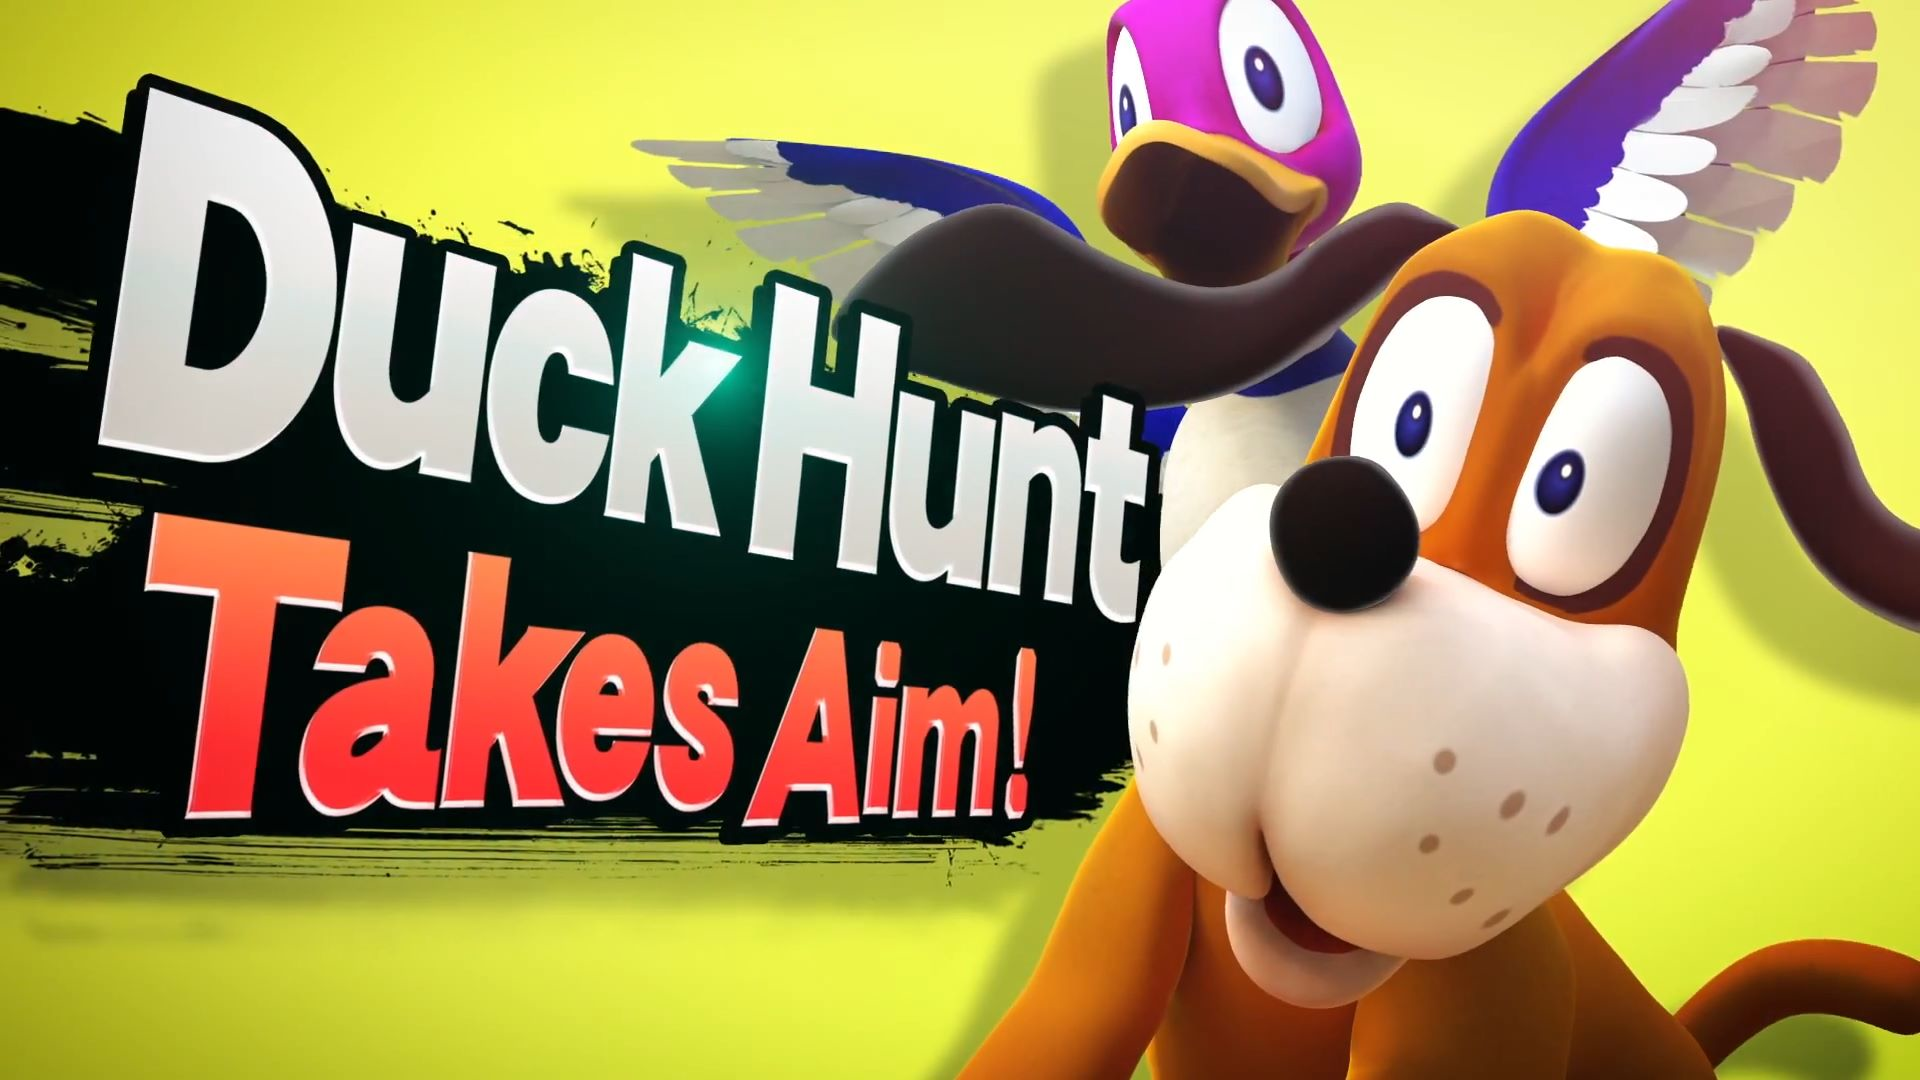 Duck Hunt Takes Aim.png